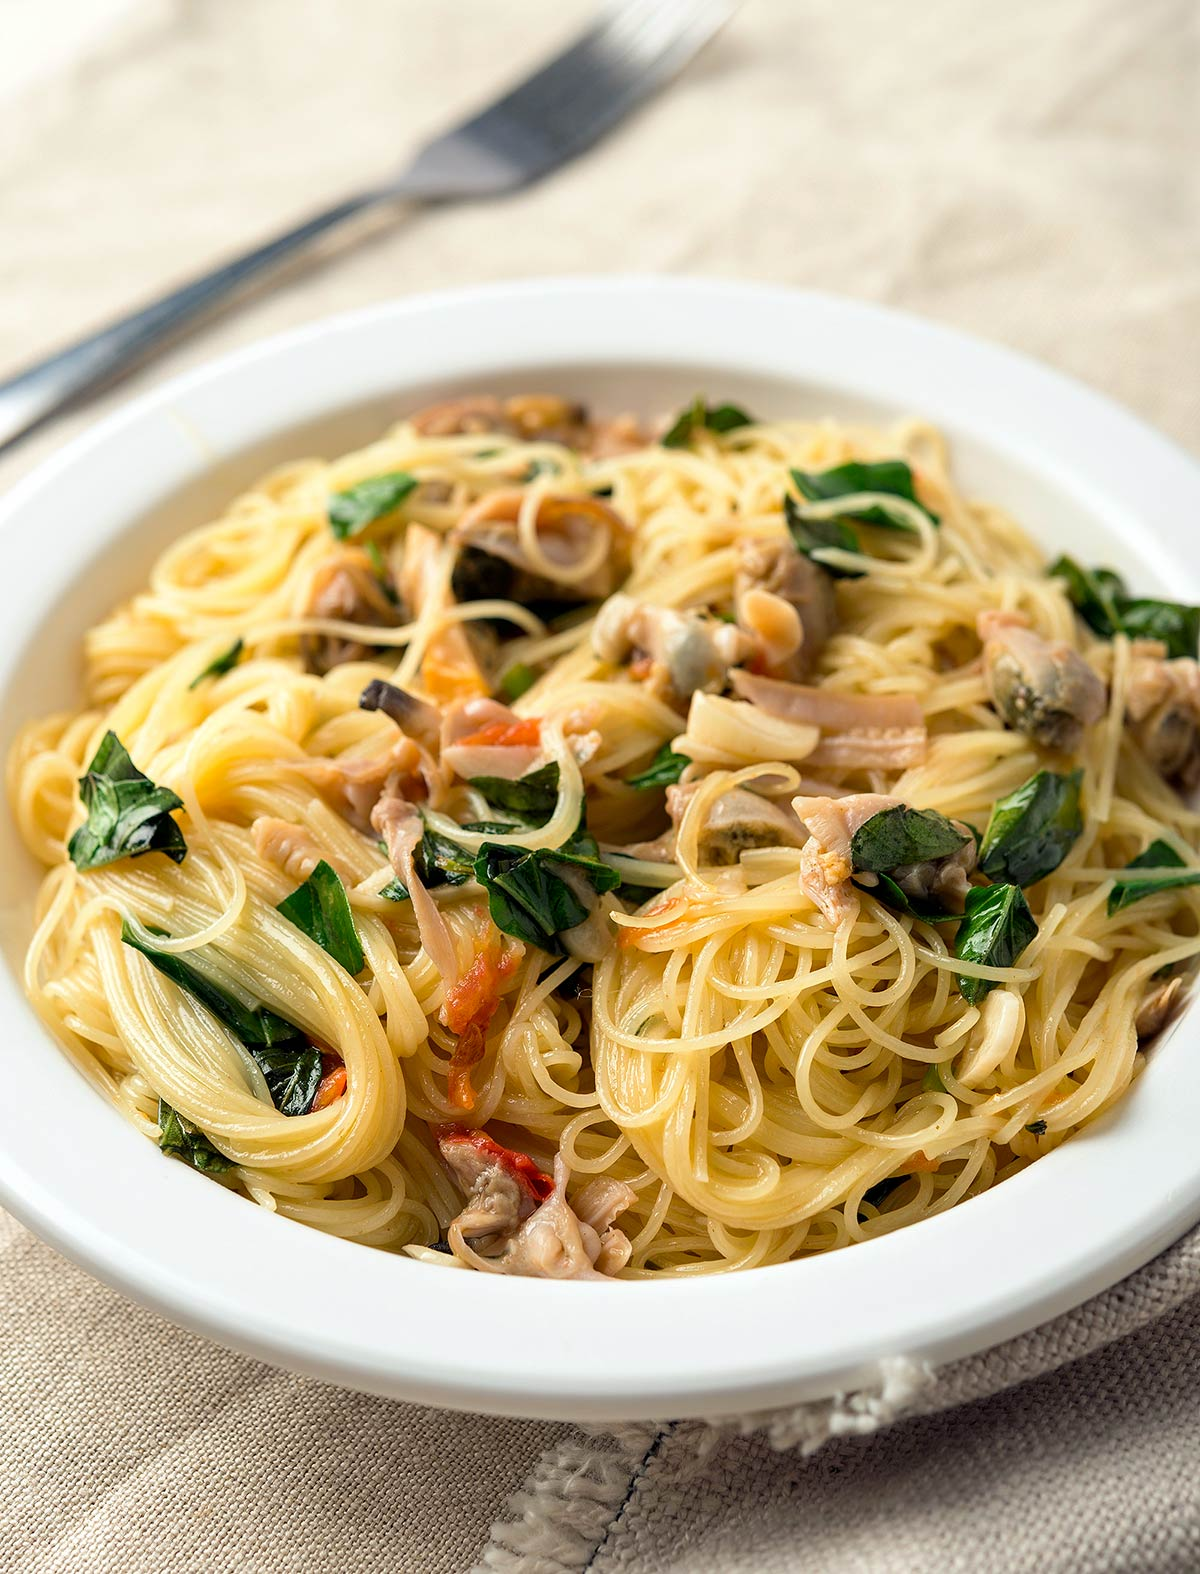 Pasta with white clam sauce on a plate